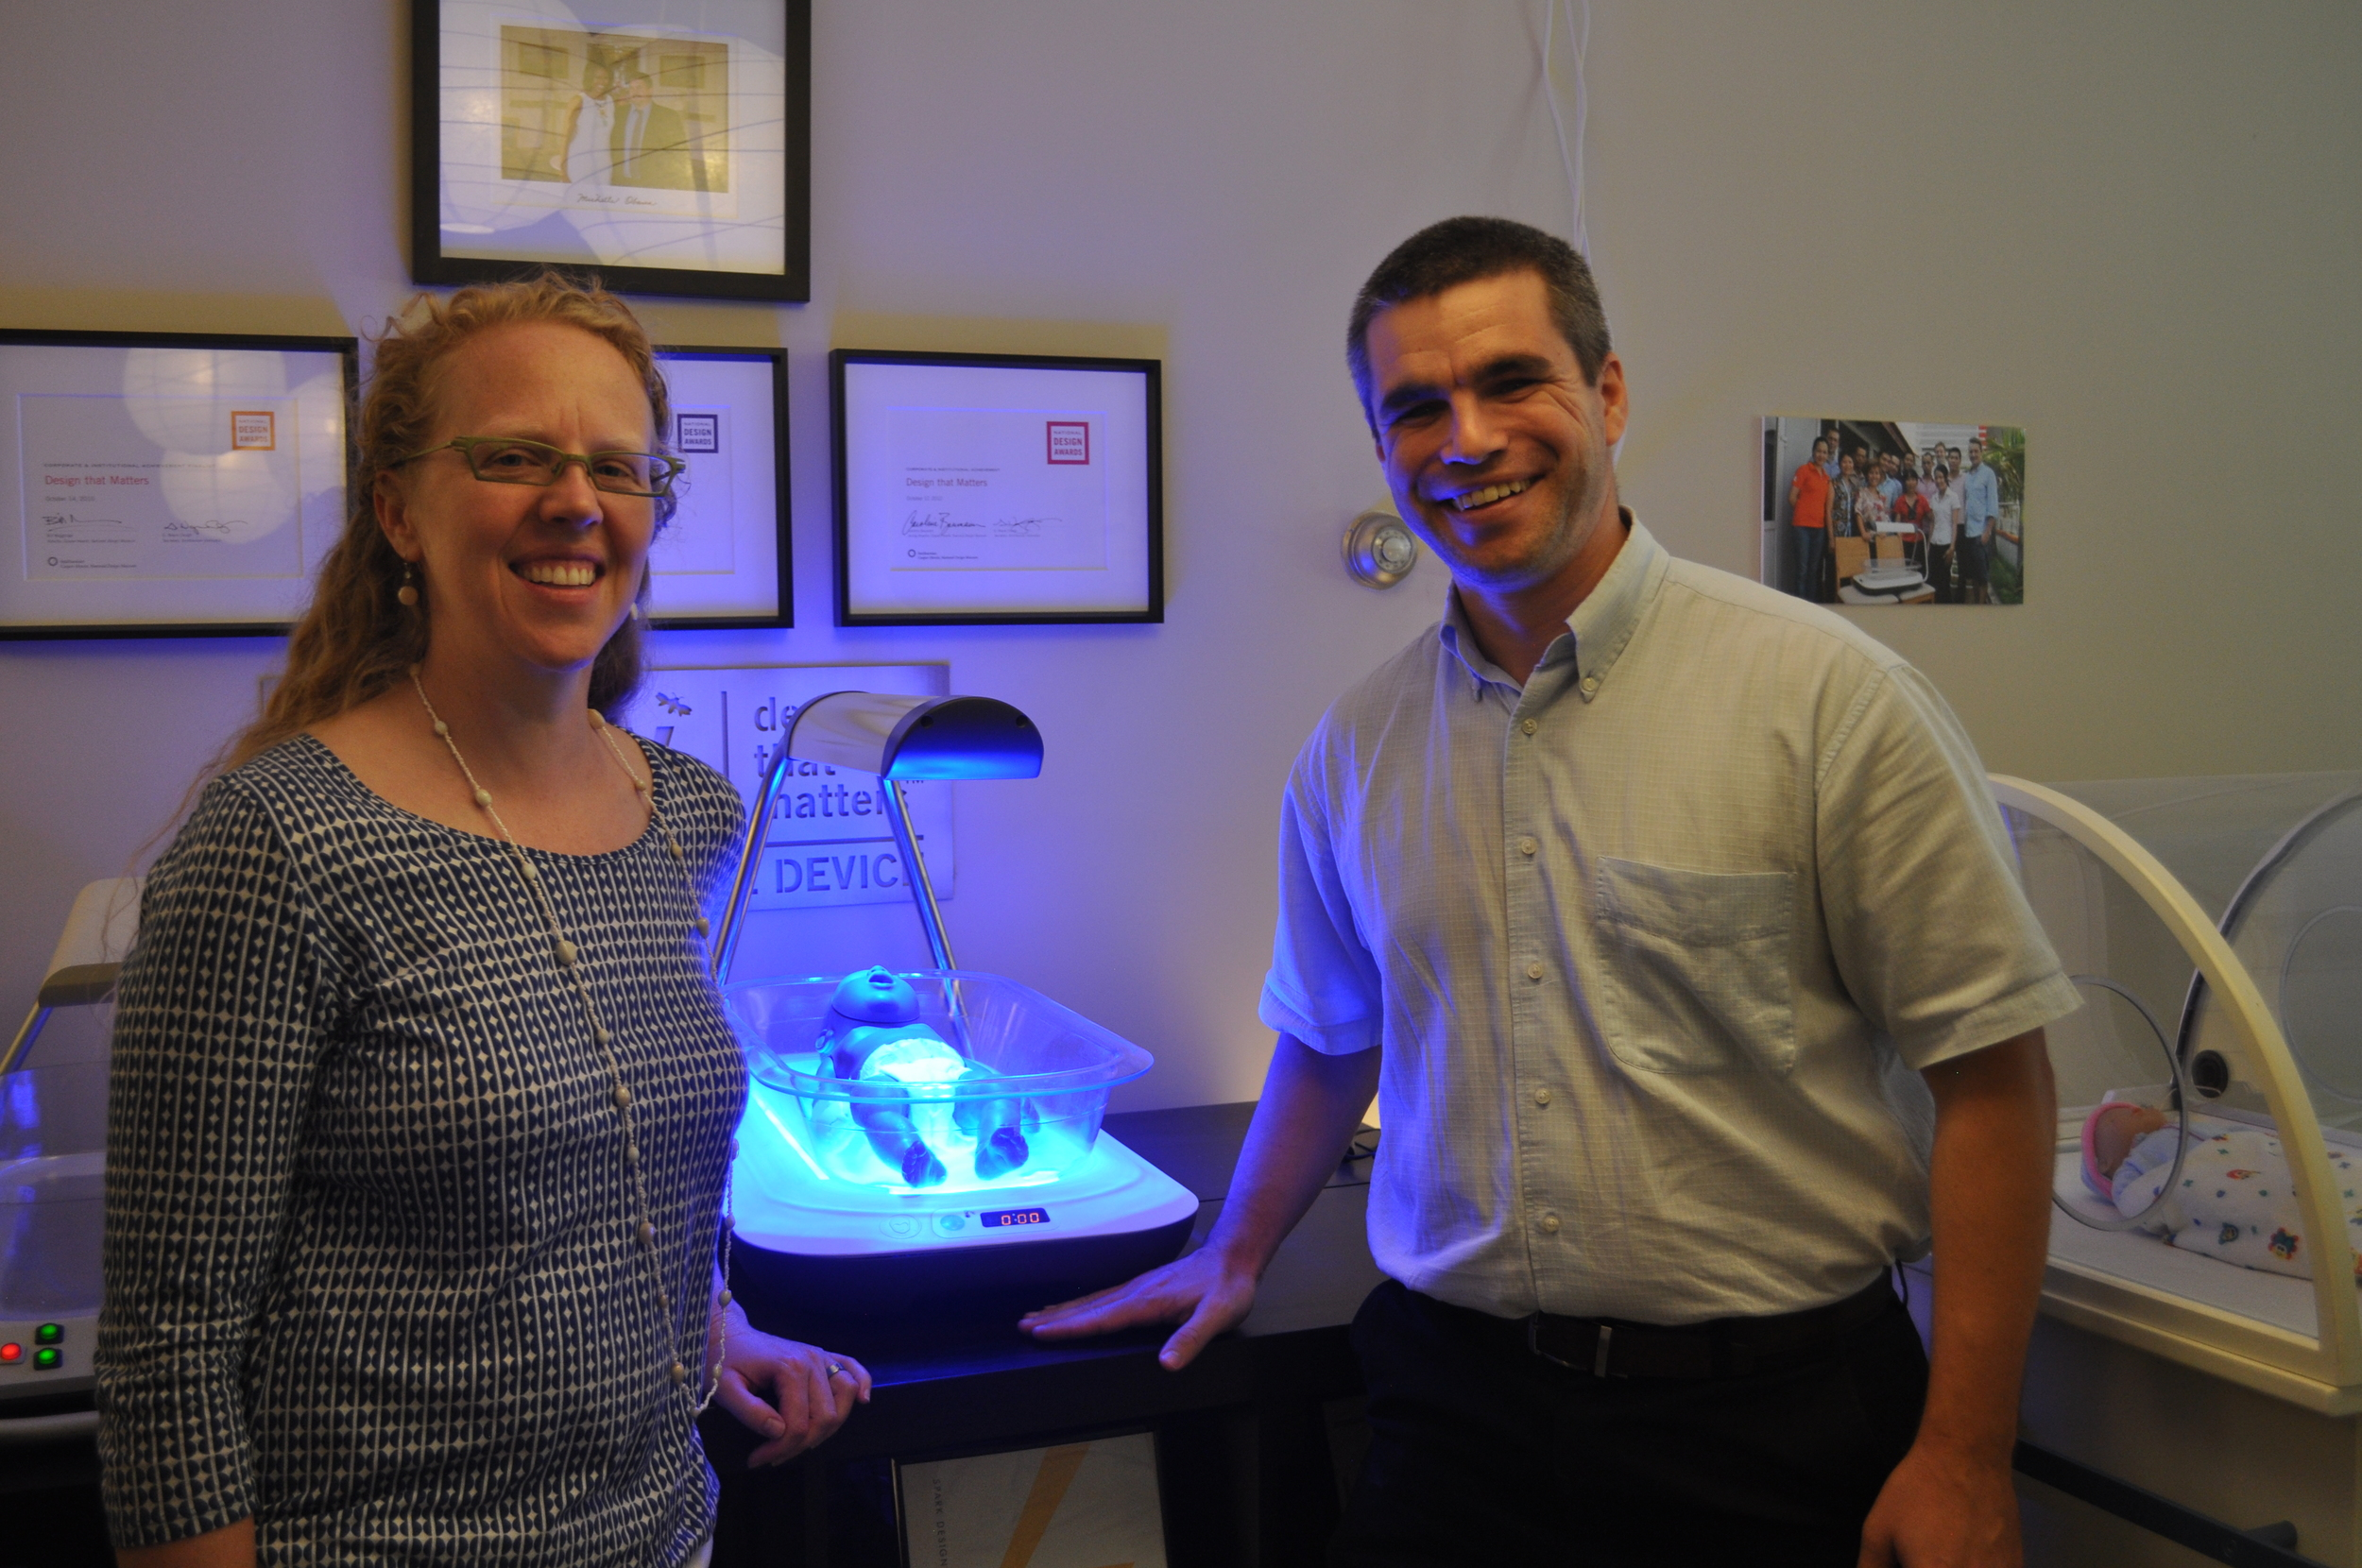 DtM's Elizabeth Johansen and Conor Shapiro, President and CEO of the St. Boniface Haiti Foundation, pose with Firefly. Haiti is the ninth country to receive Firefly devices.